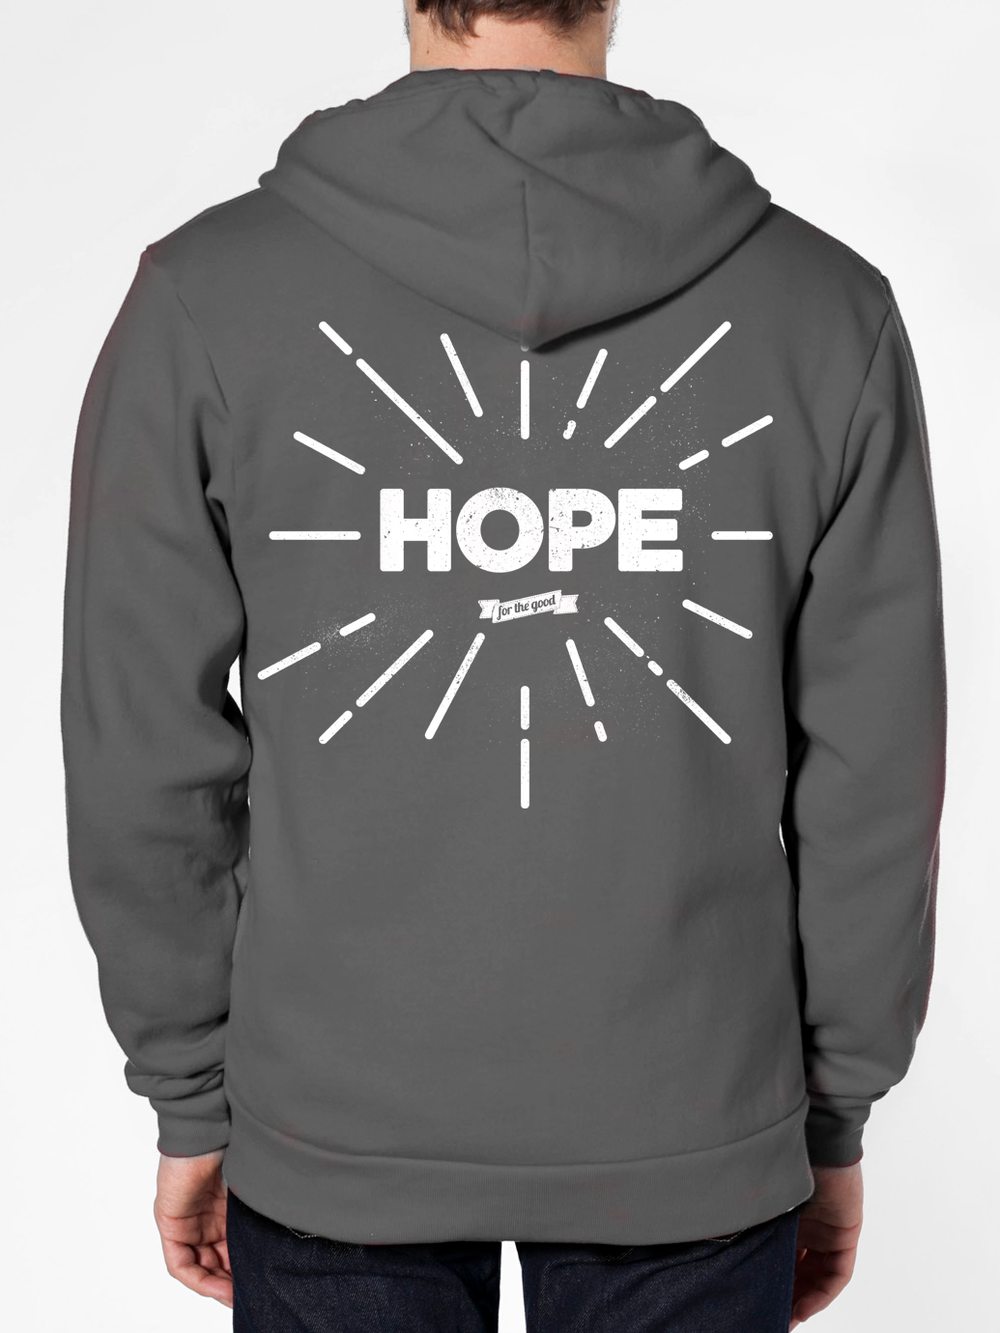 hoodie design in support of #HopeForSwaziland